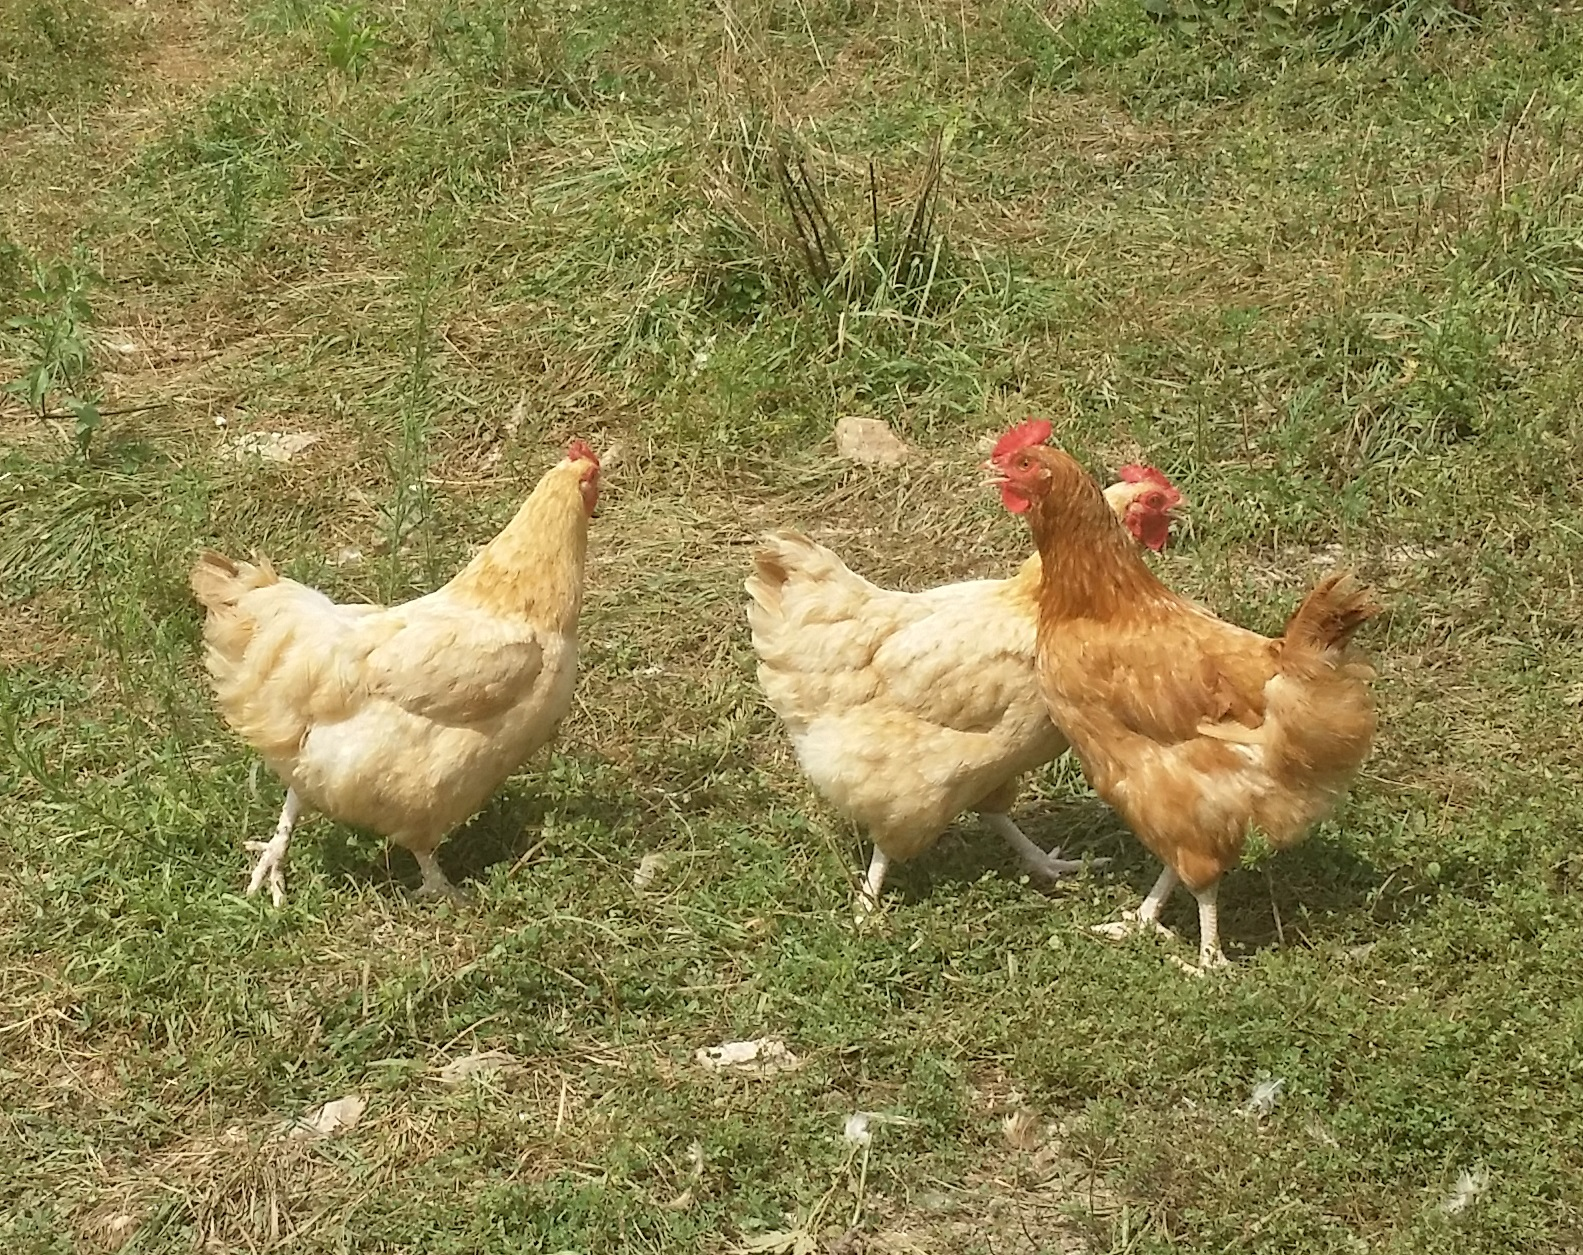 Non Vegetarian Fed Chickens